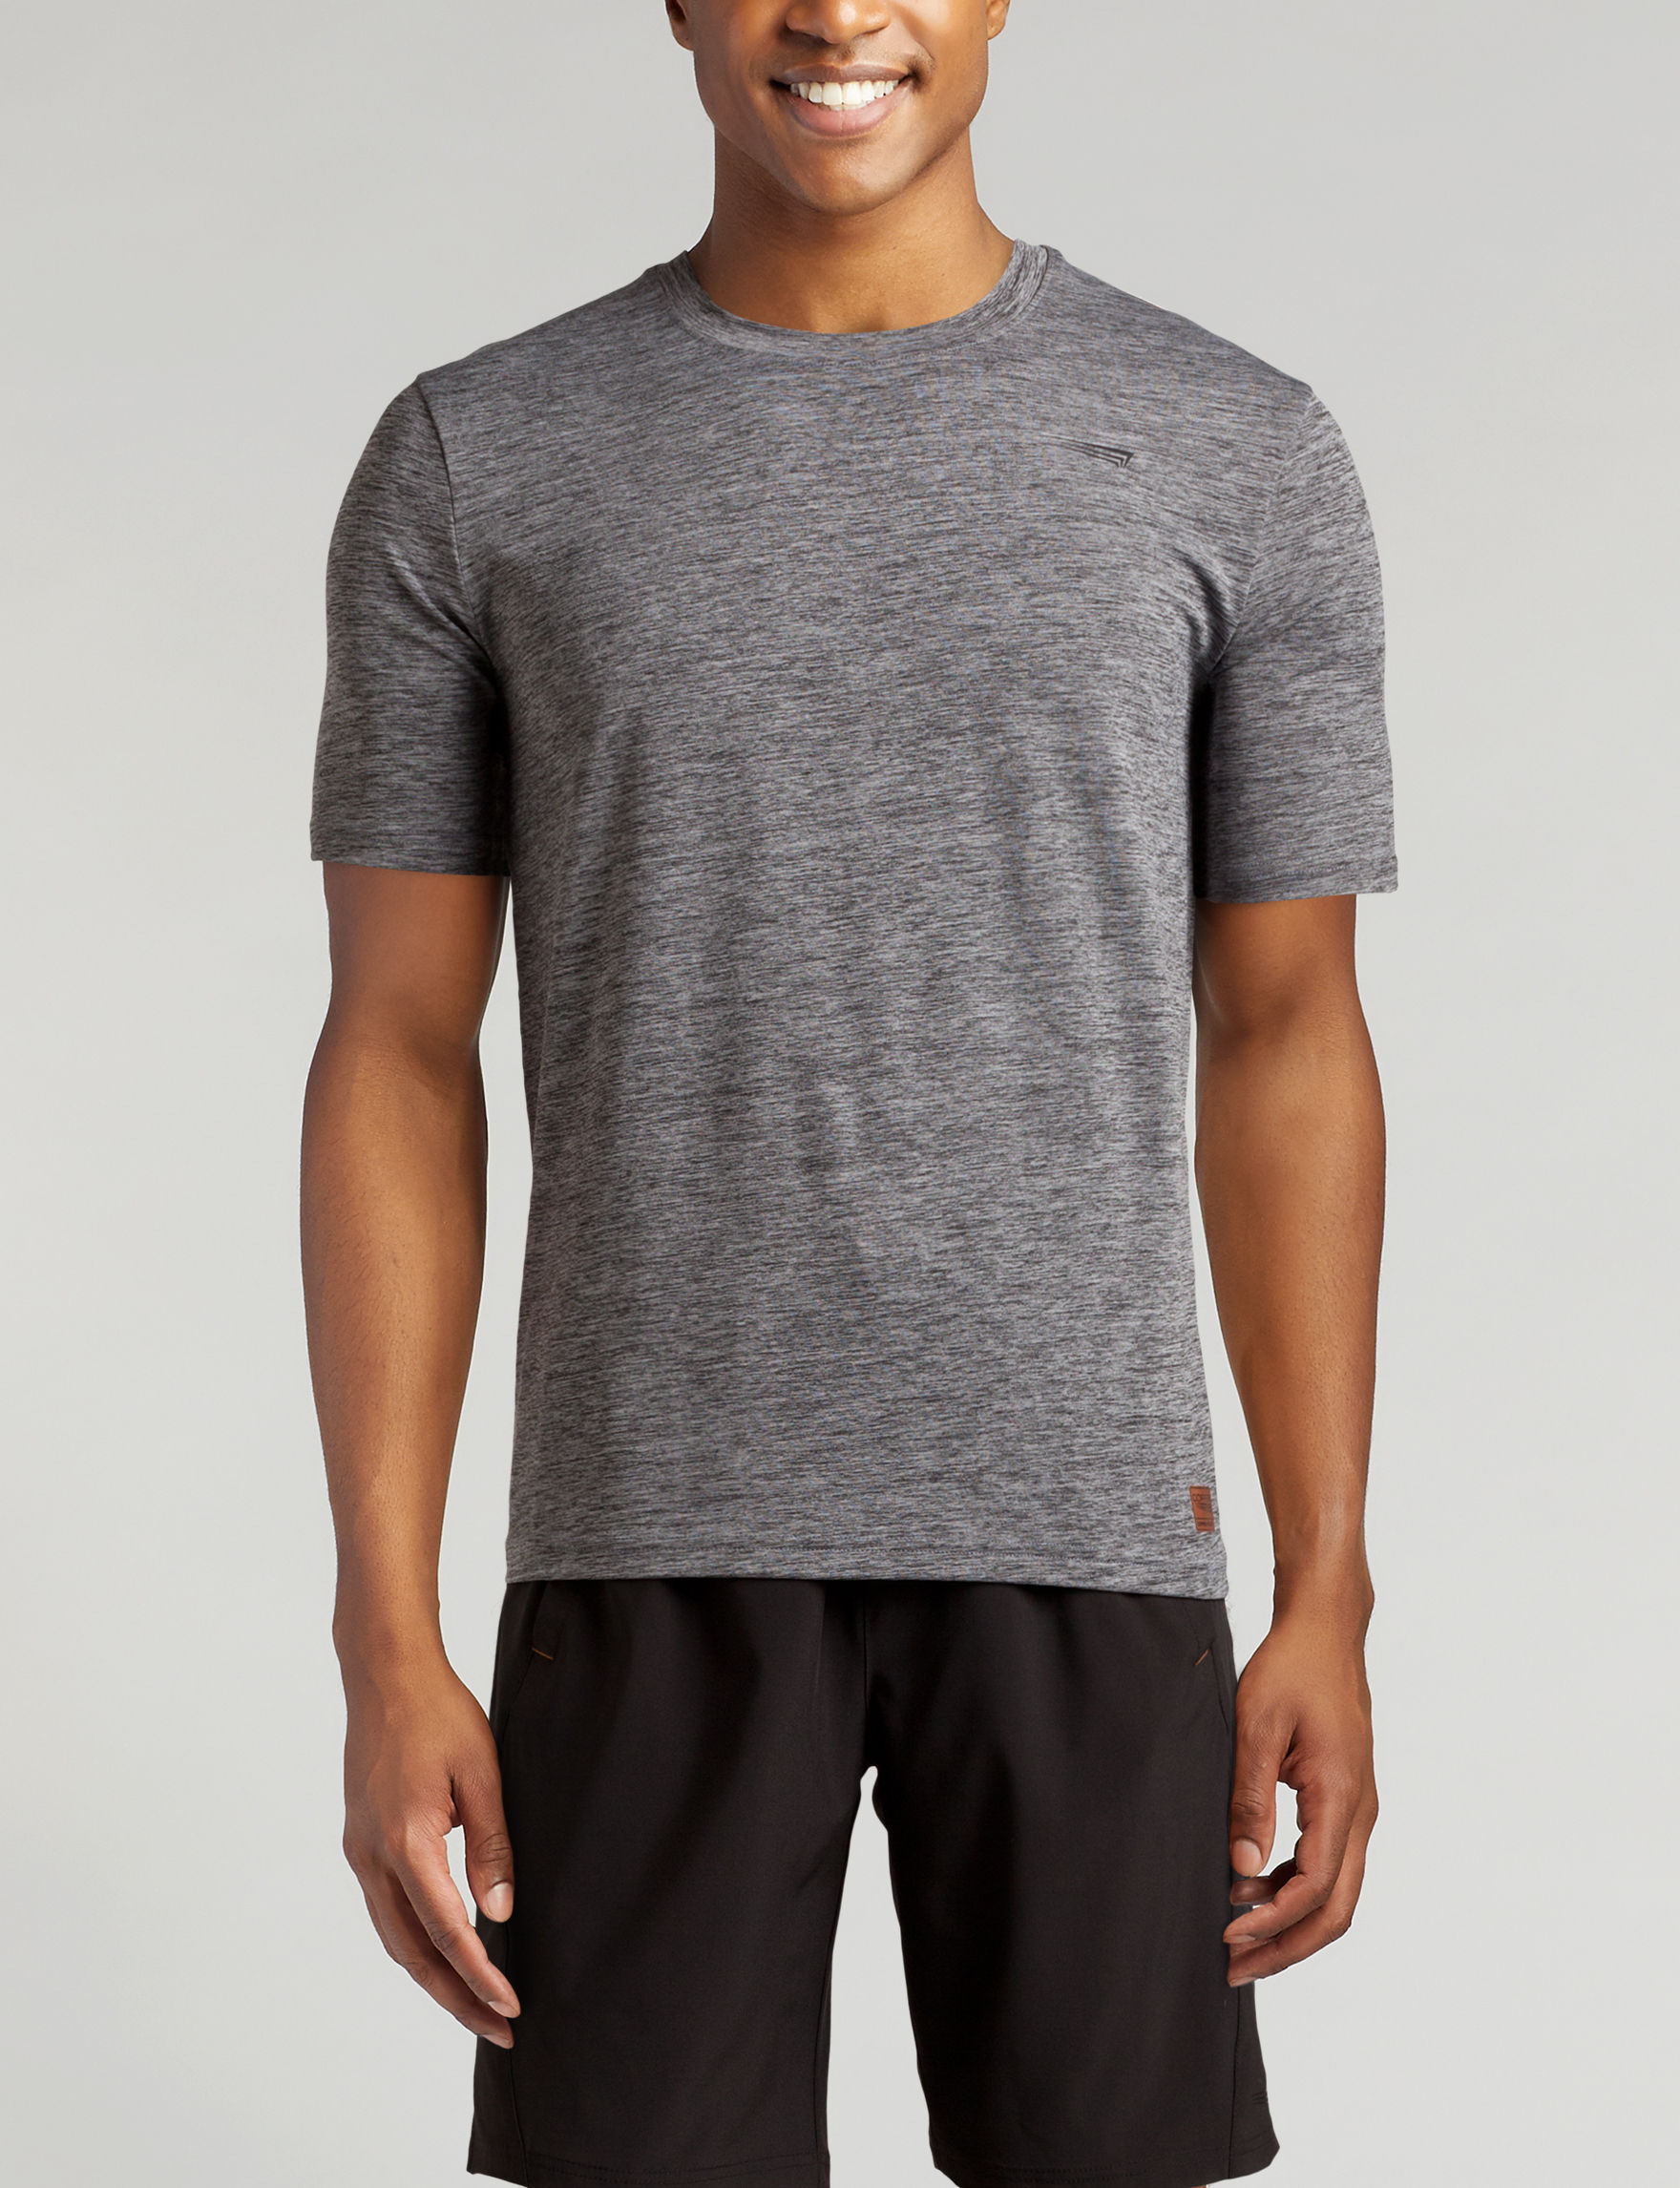 Copper Fit Heather Grey Tees & Tanks